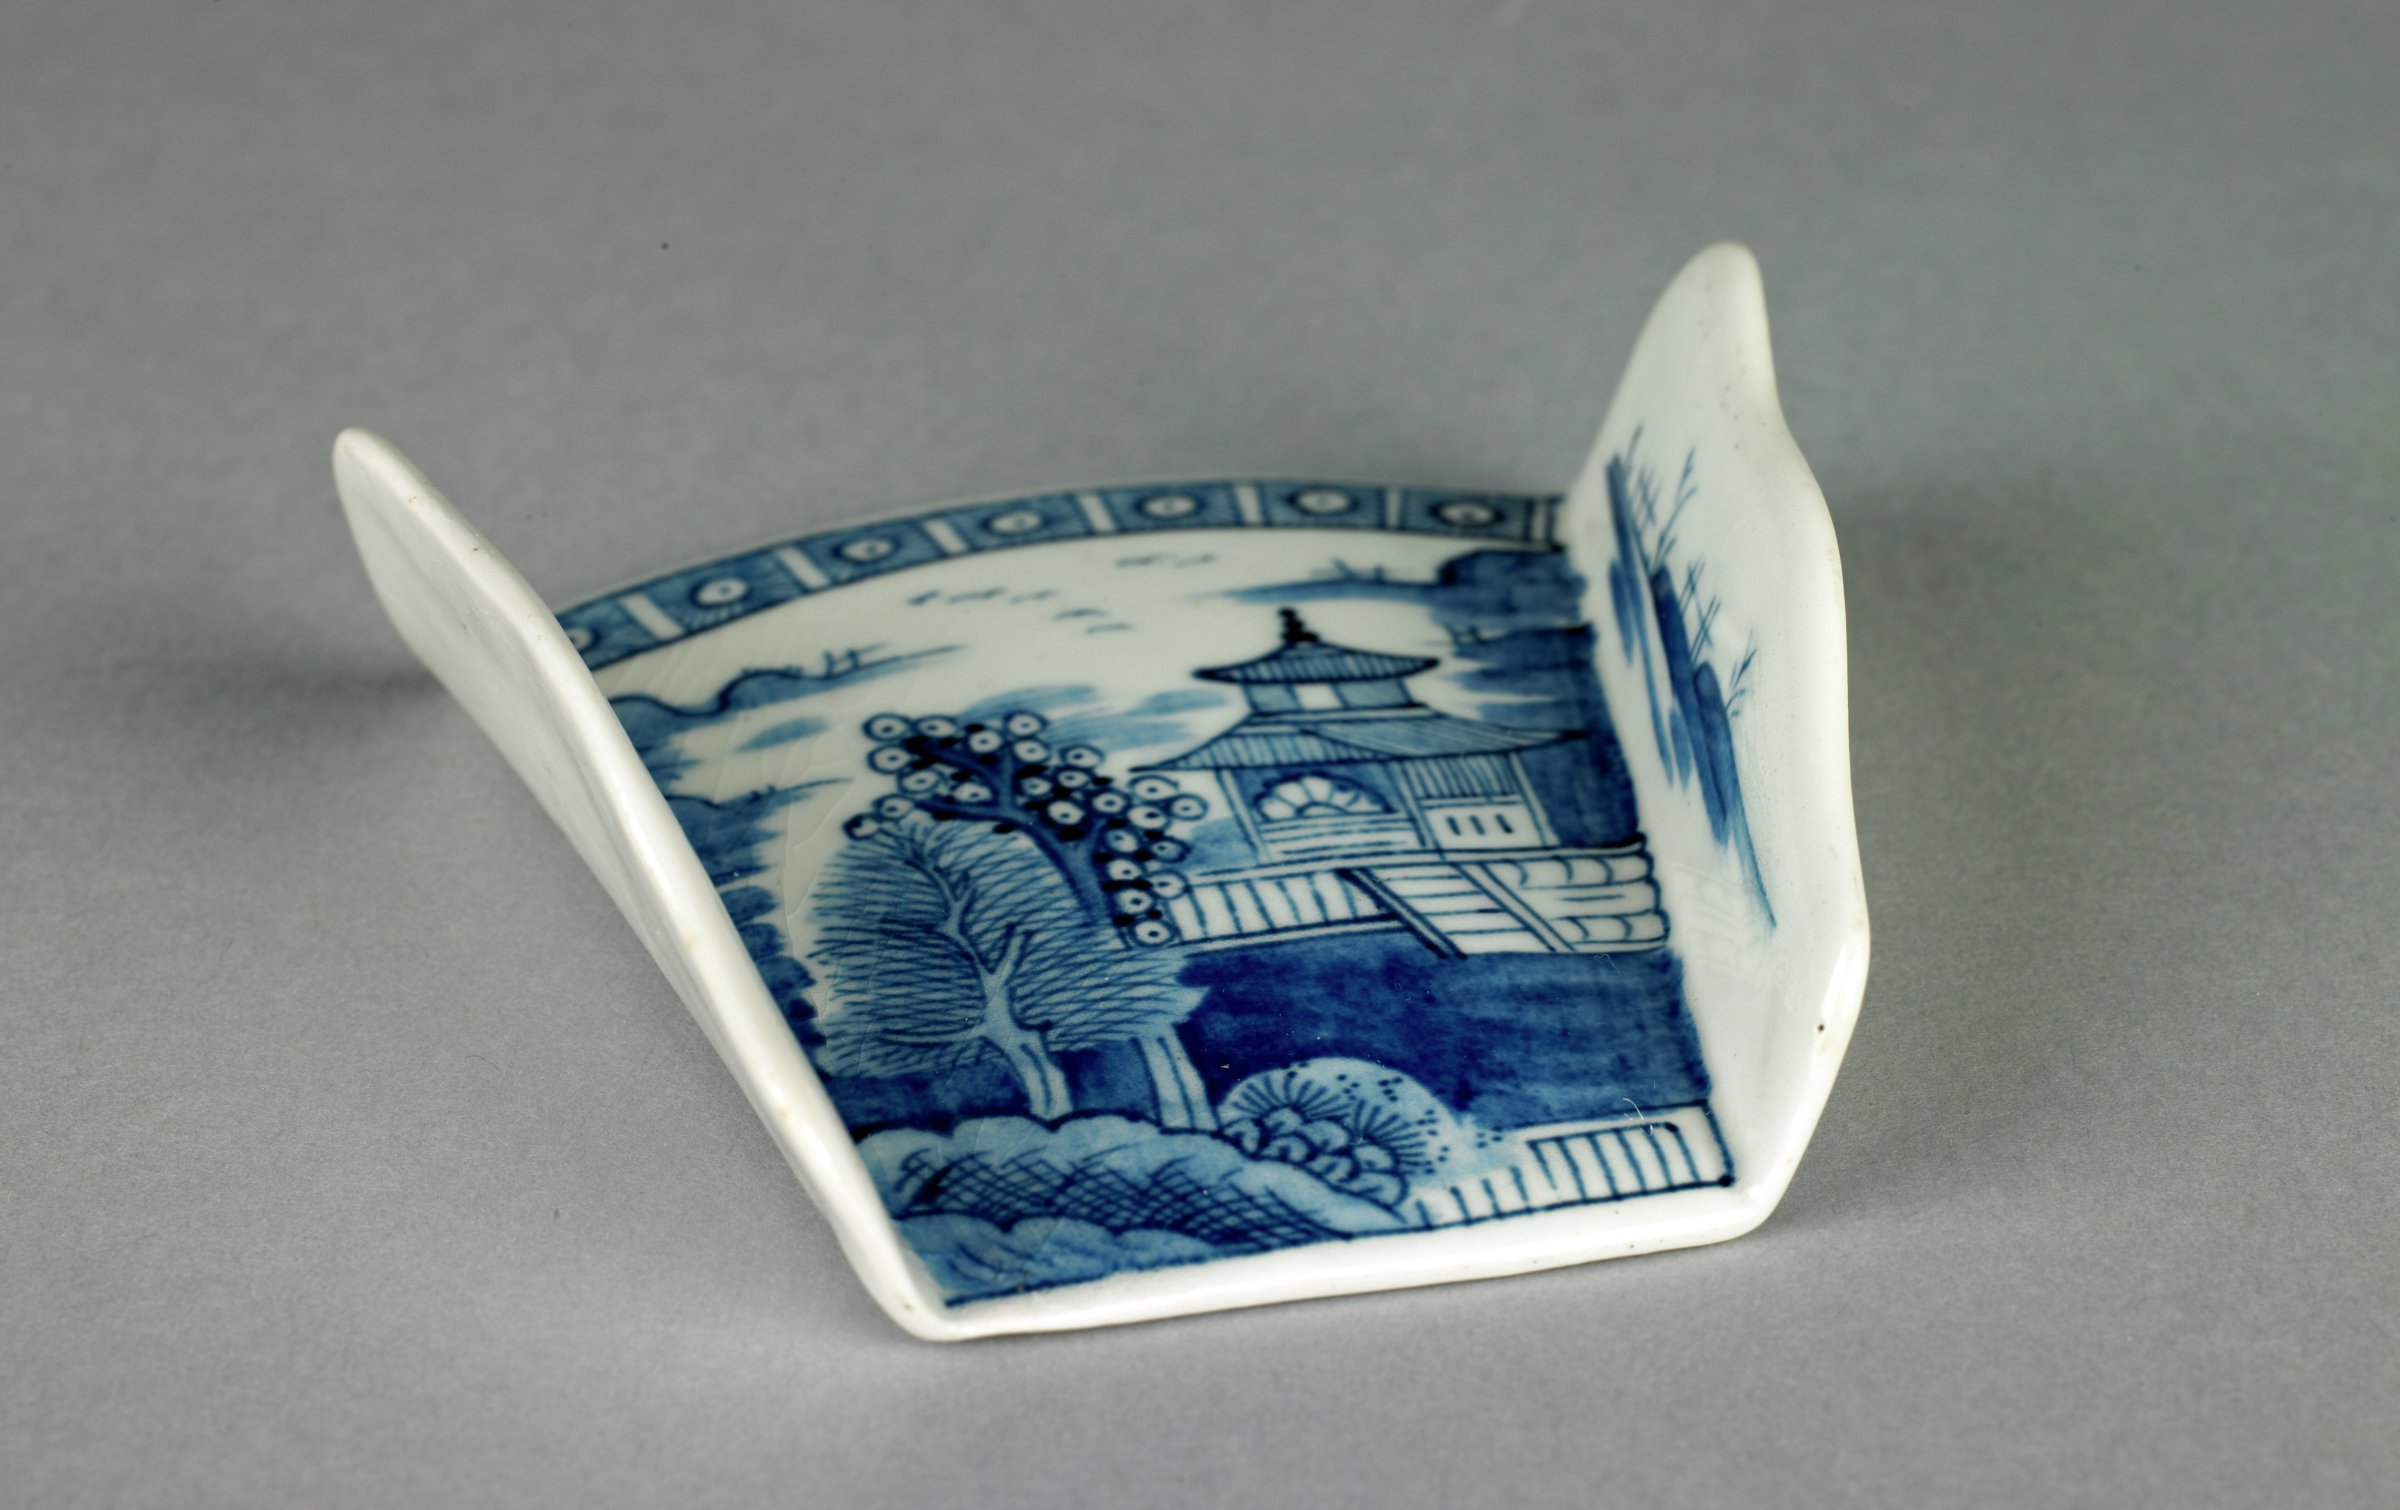 """Small asparagus shell, or server, of white soft-paste porcelain with low vertical, scalloped sides that taper towards one end, open at both ends to allow bundles of asparagus spears to be contained inside, the interior printed in underglaze blue in a variation of the Caughley """"Temple"""" pattern, the border above comprised of a series of blue squares with round reserves and blue dots."""